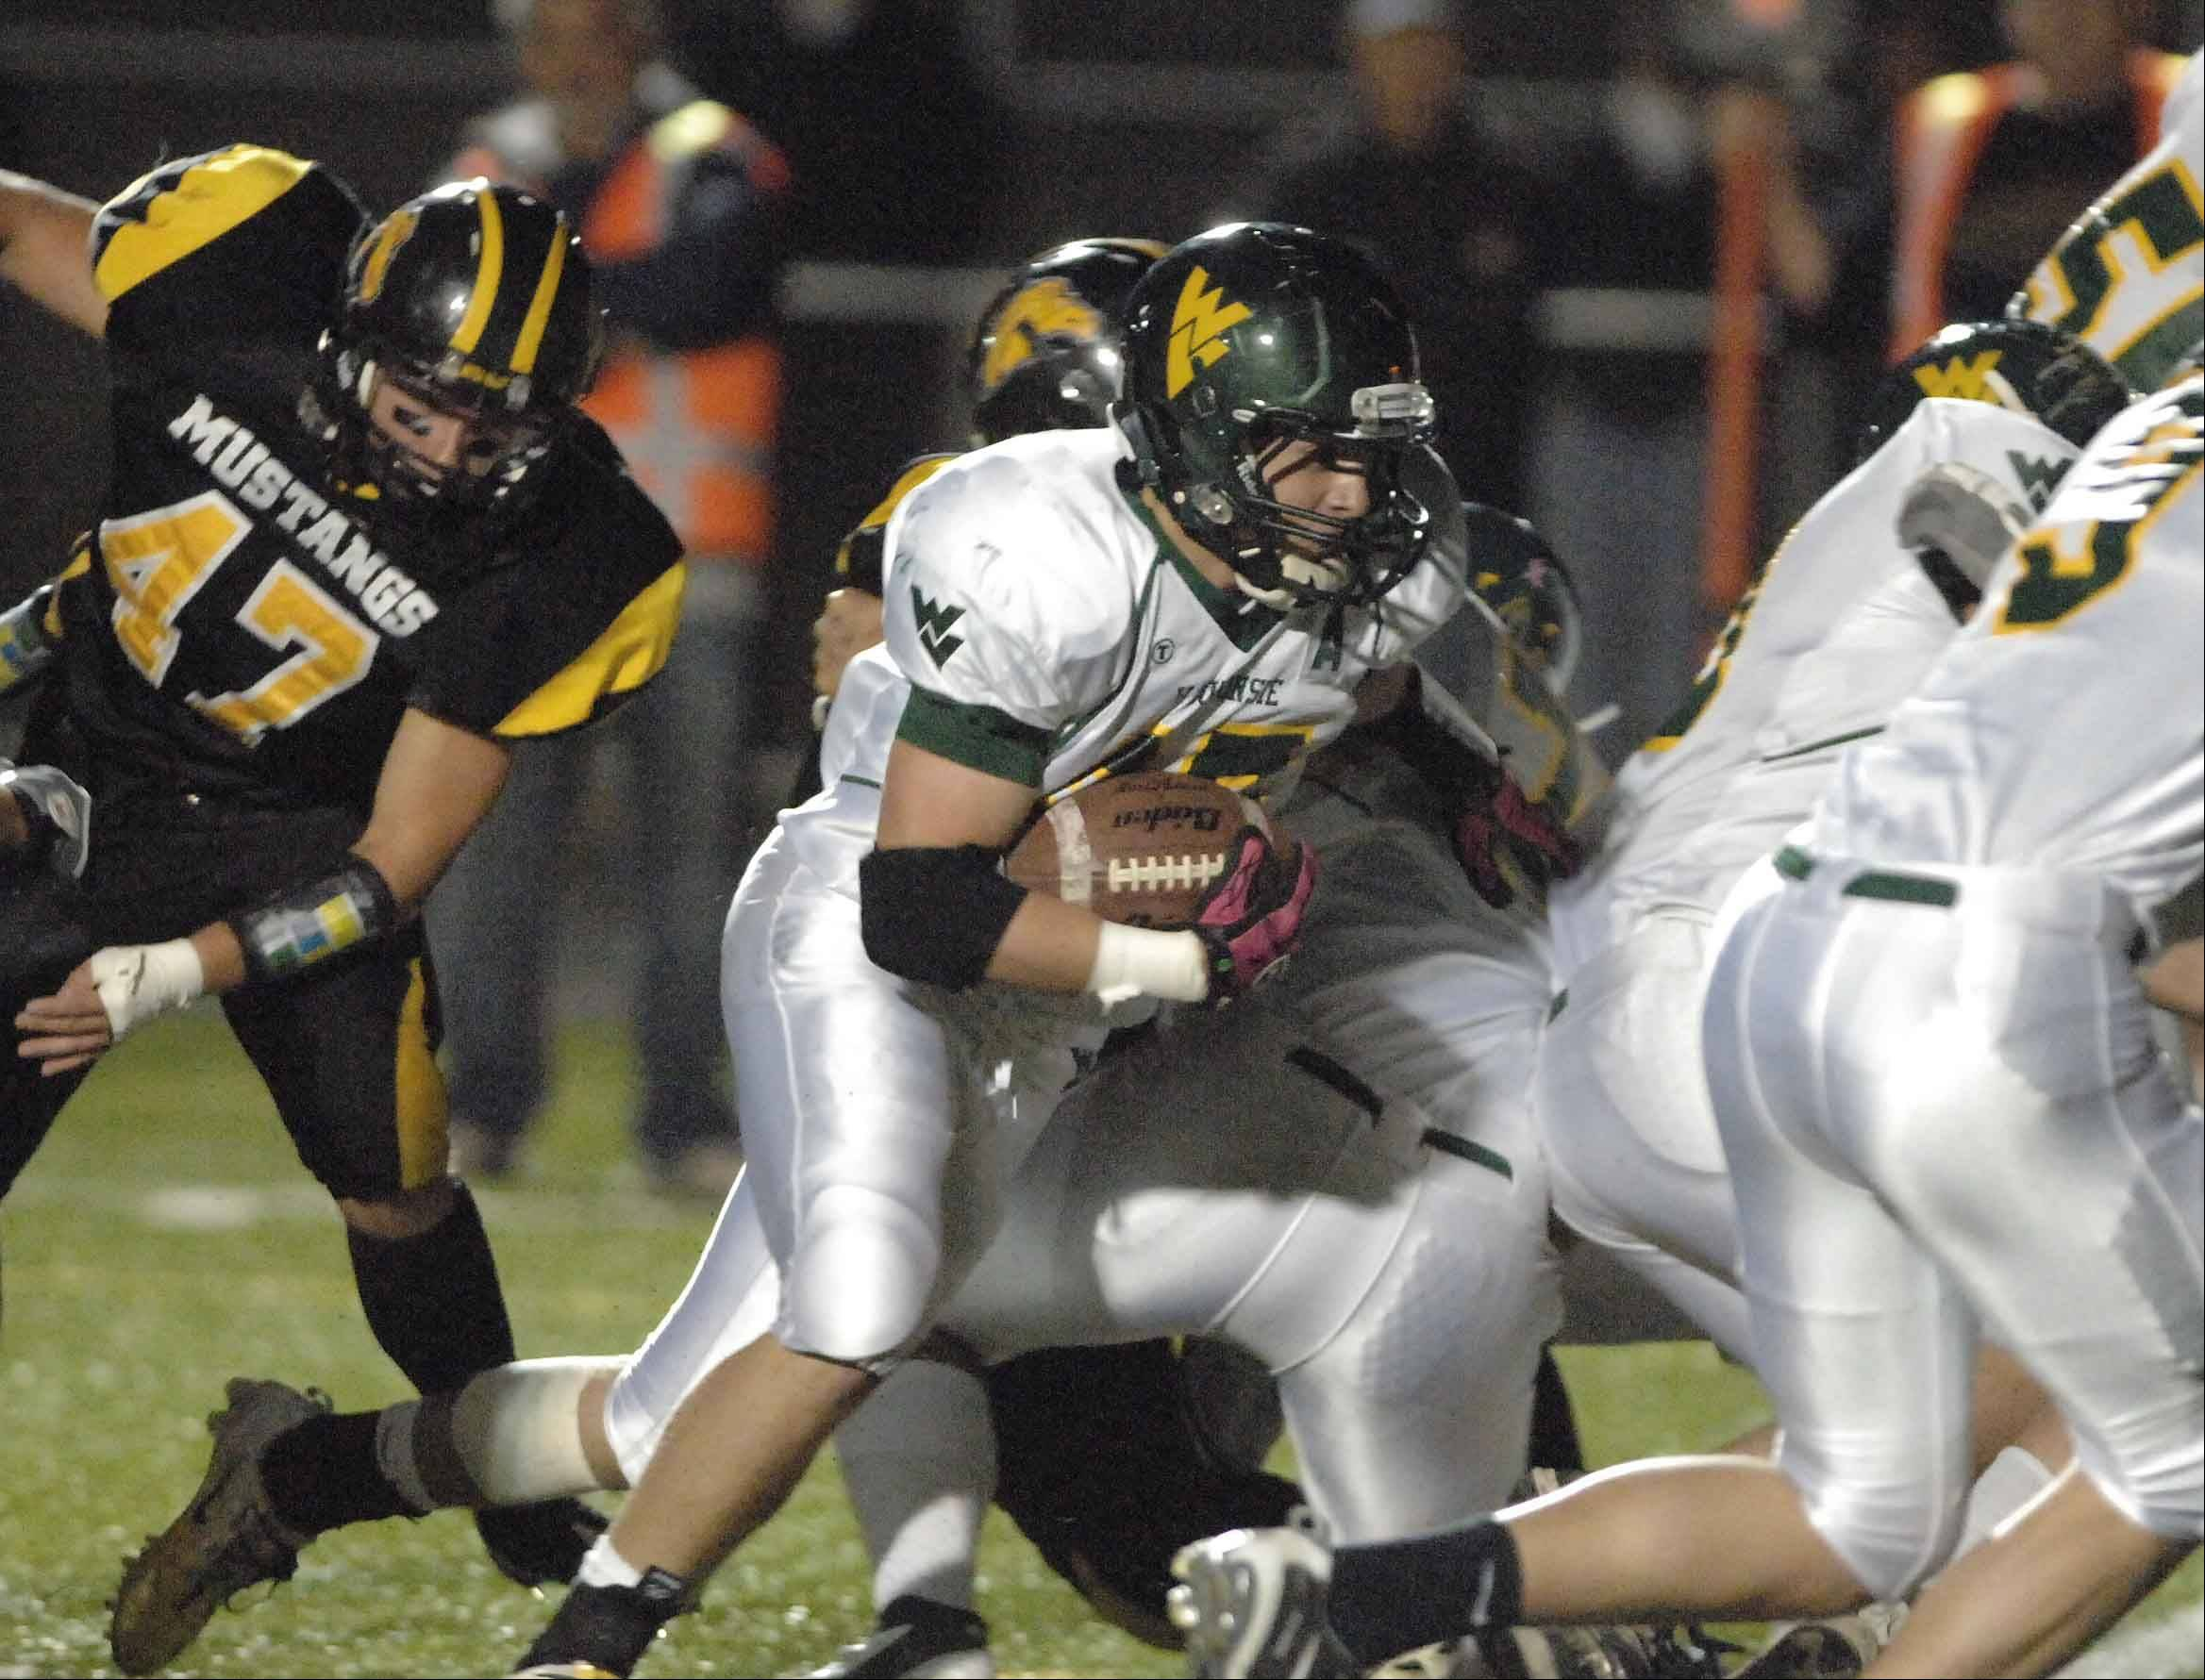 Waubonsie Valley running back Austin Guido, center, committed to play football at Western Michigan.